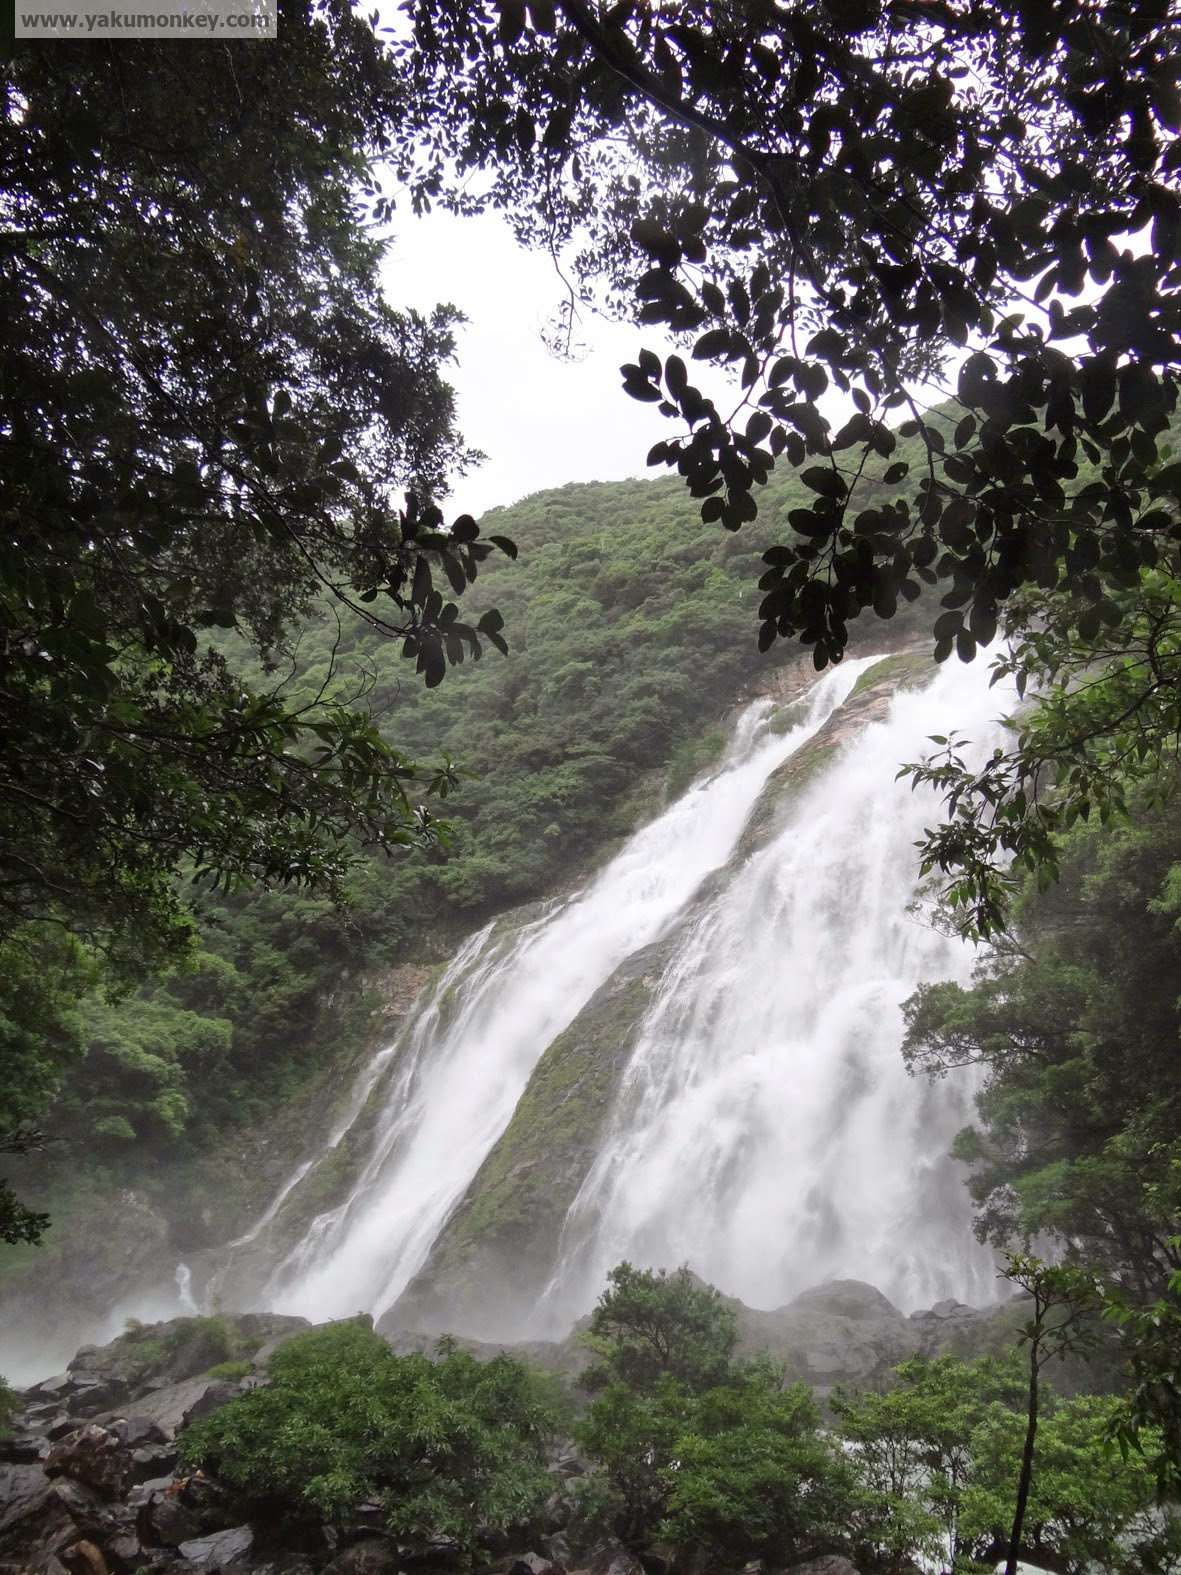 Oko-no-taki Waterfall, Yakushima